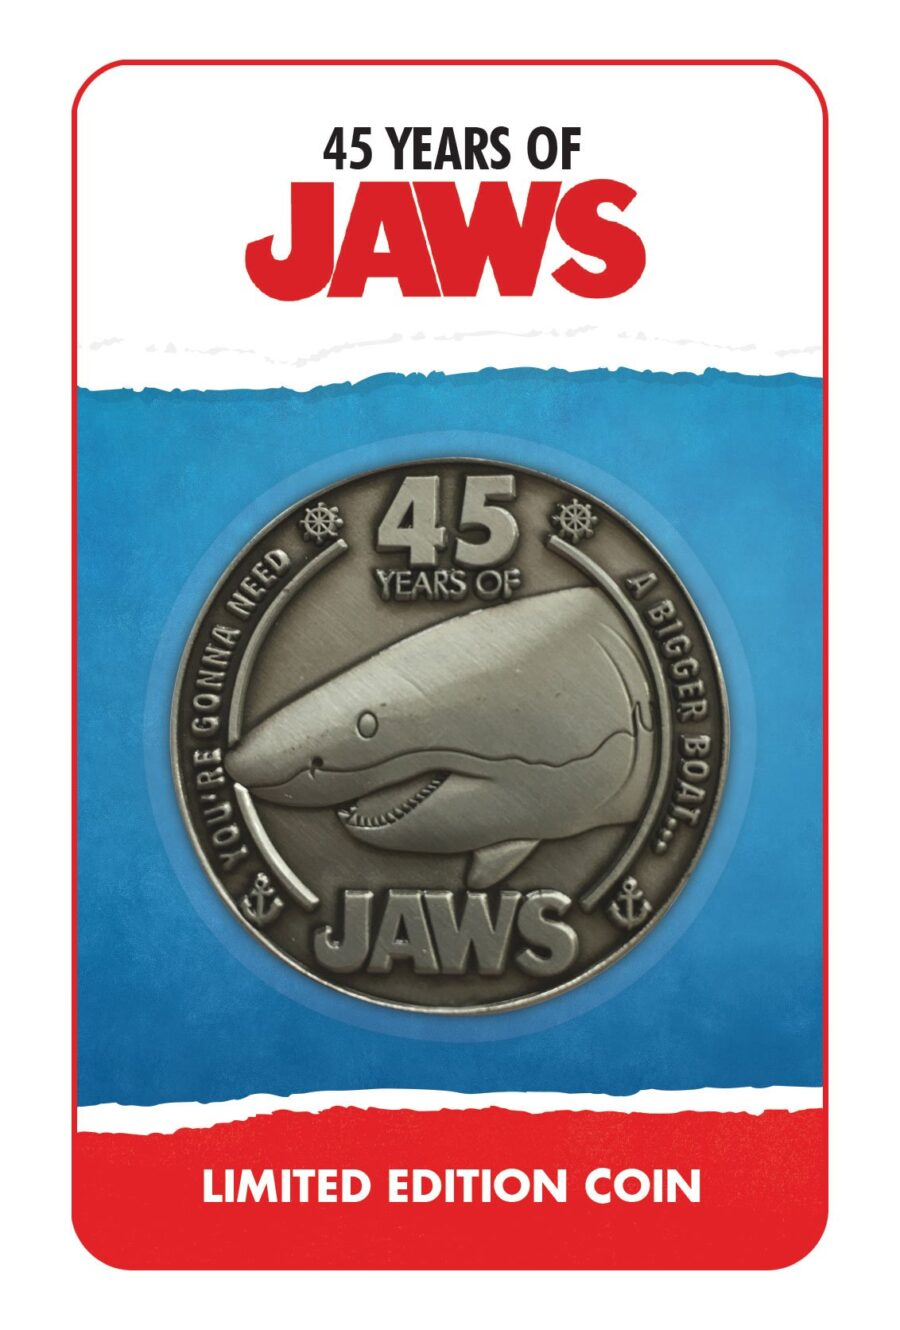 Collectable Coin: Jaws 45th Anniversary